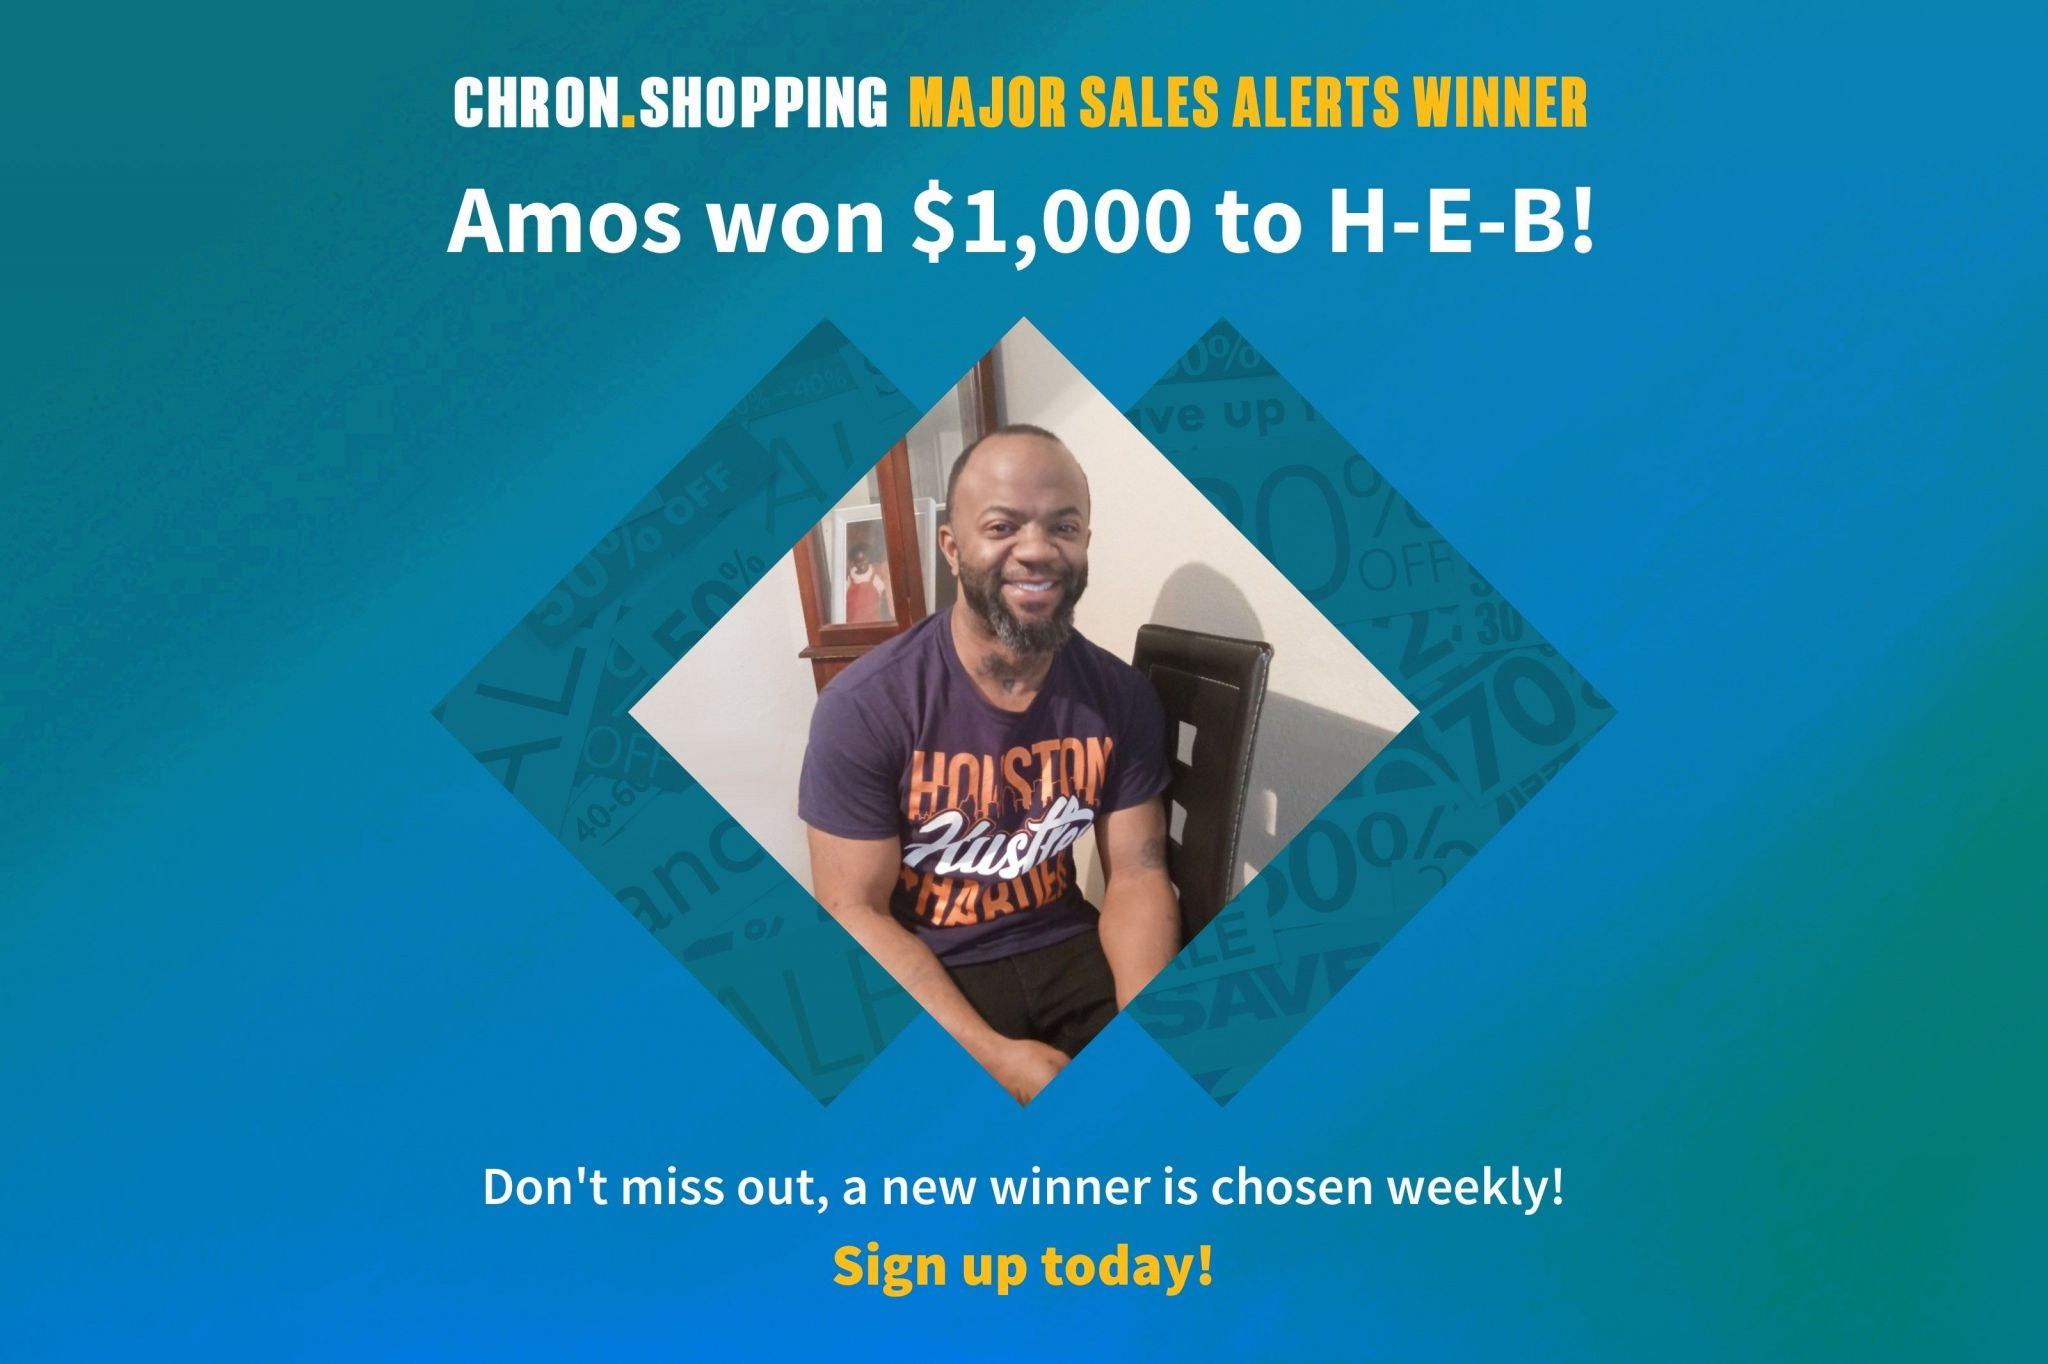 Meet Amos, the latest Chron.com reader to sign up for Major Sales Alerts and win $1,000 to spend at H-E-B. YOU could be next!